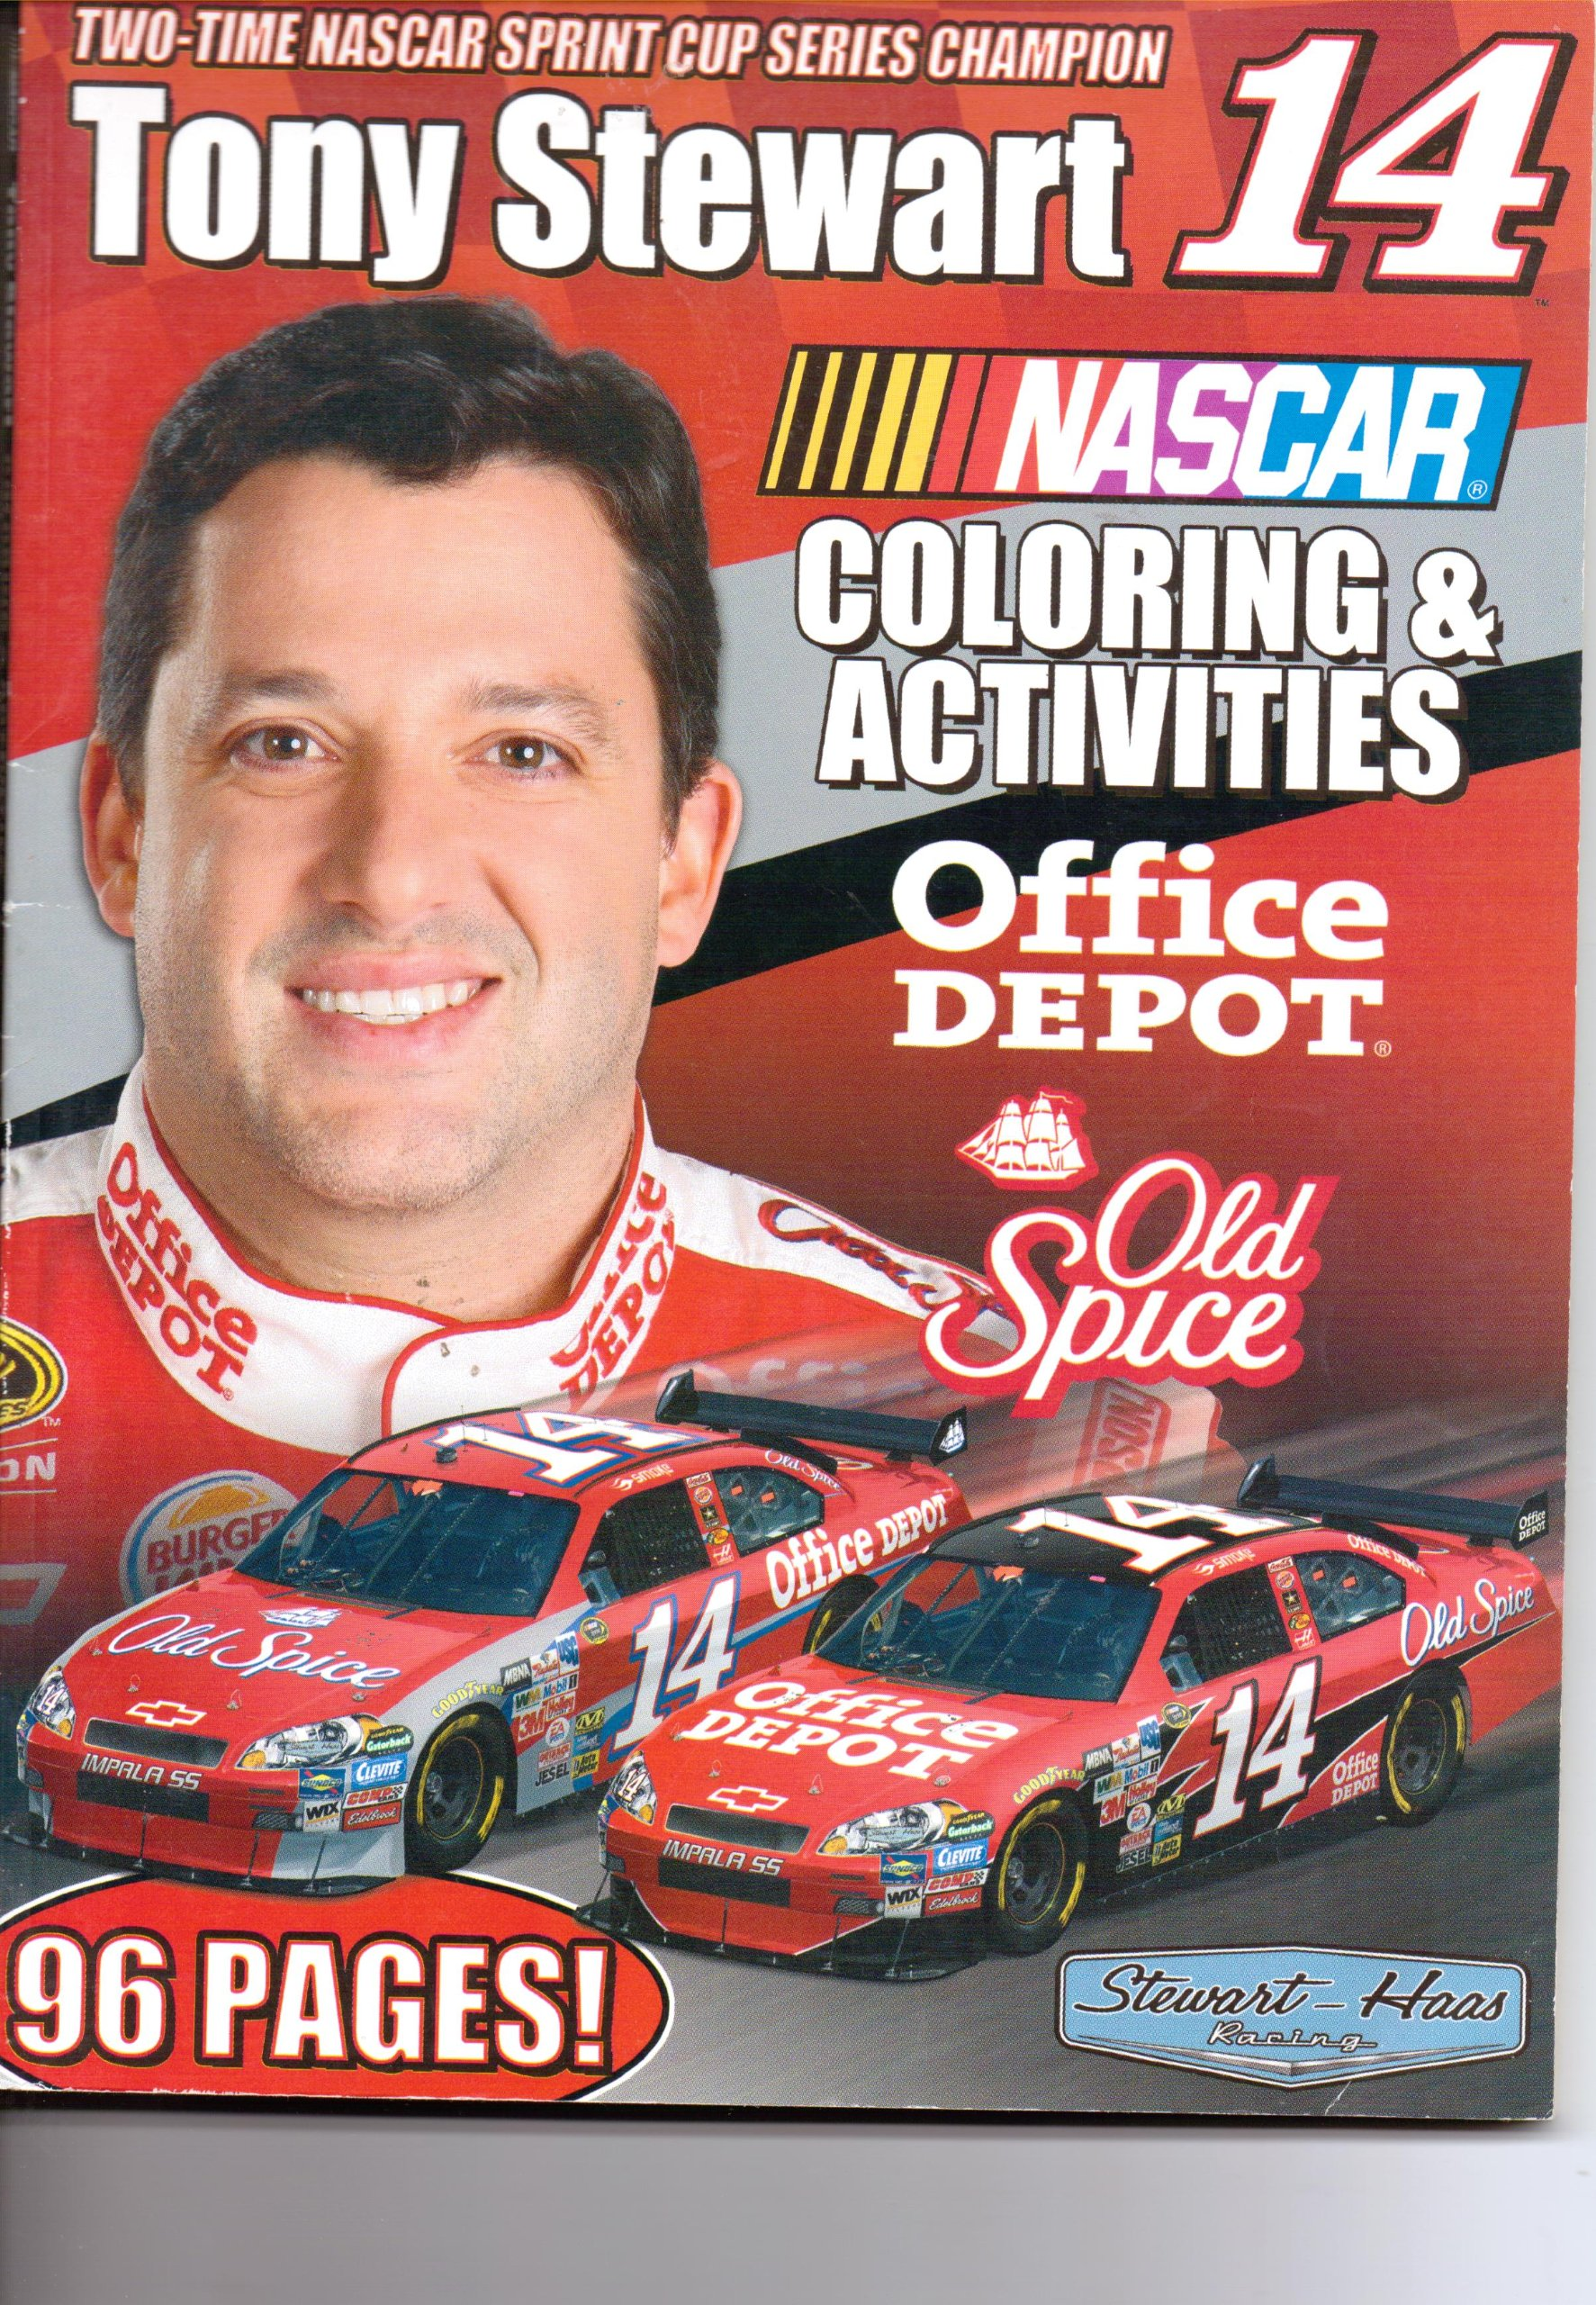 Tony Stewart (Nascar Drivers Coloring Book)